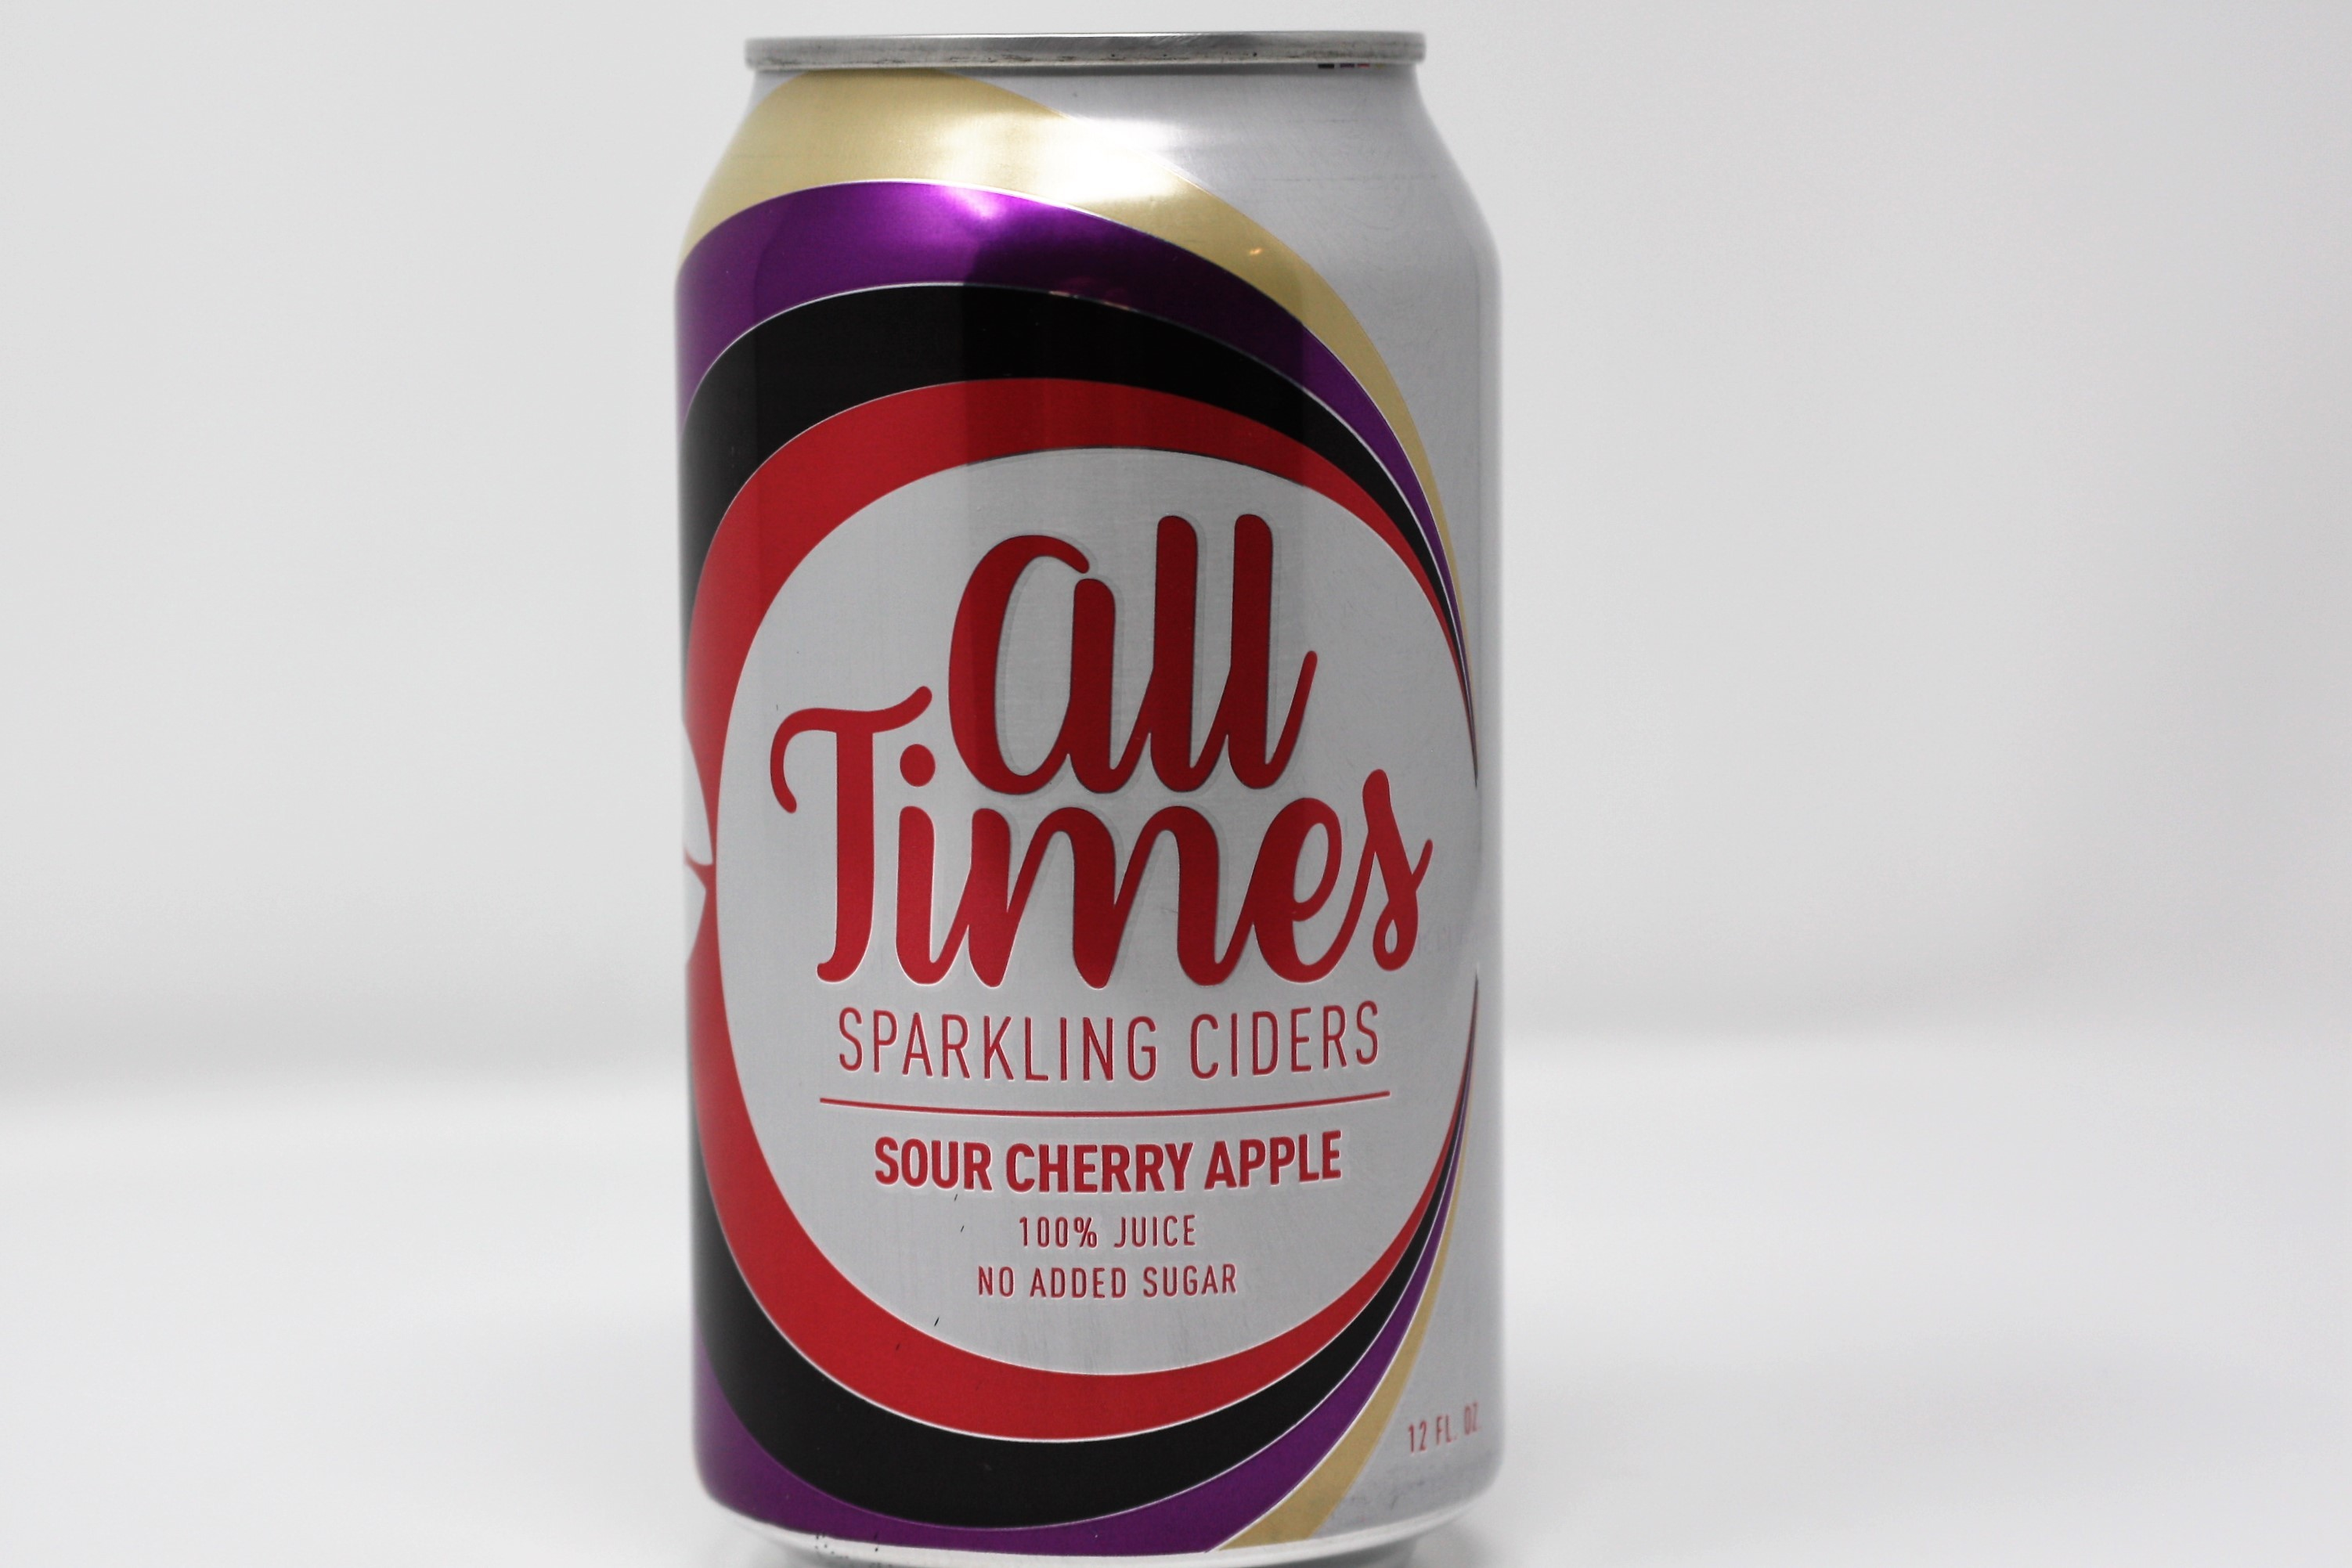 All Times Sour Cherry Cider